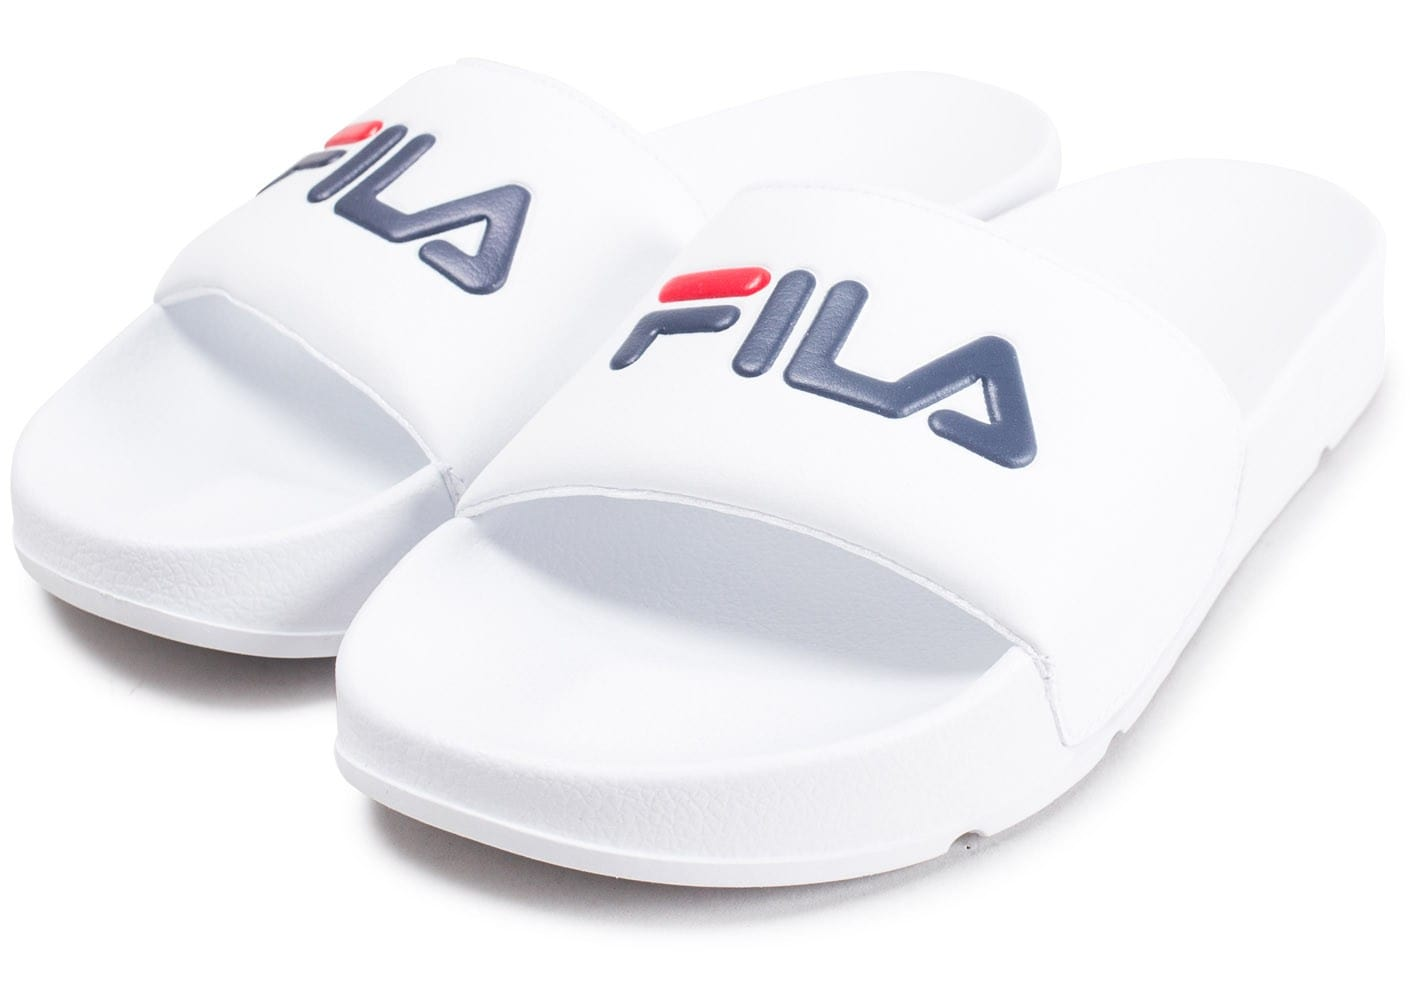 Blanche Drifter Chaussures Fila Baskets Chausport Homme Sandales 6bfygY7